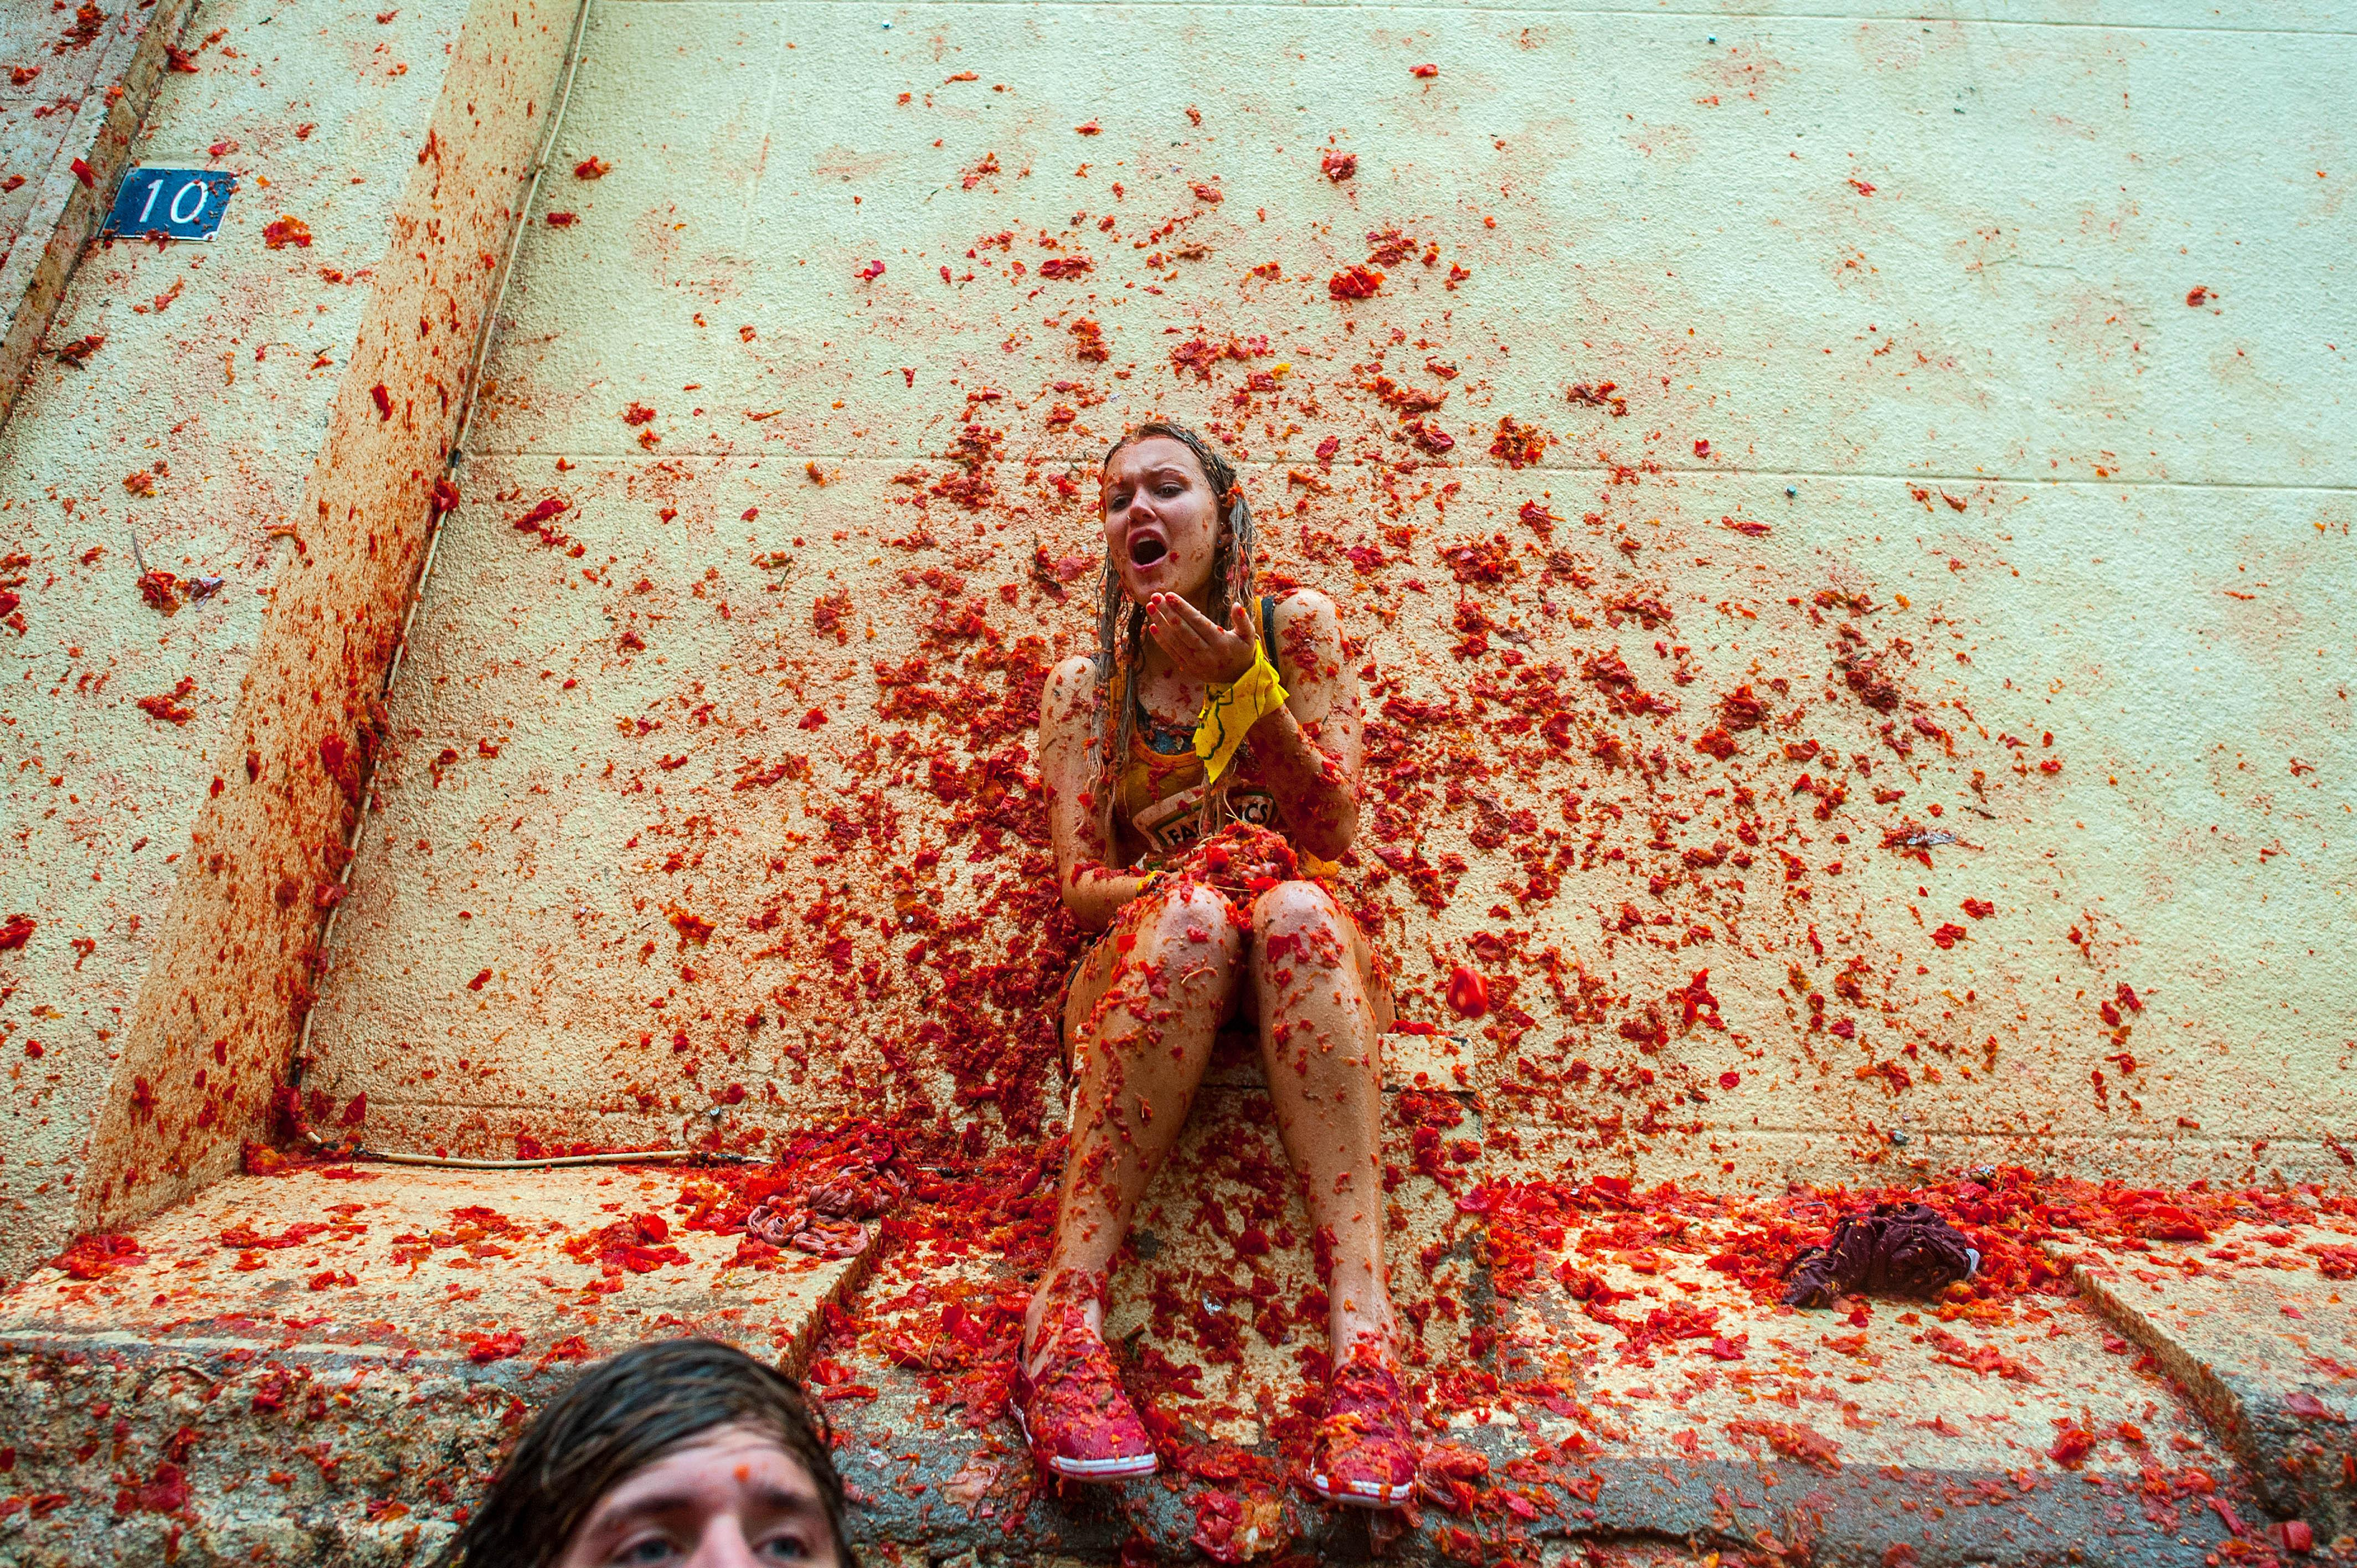 A women at La Tomatina is hit by tomatoes